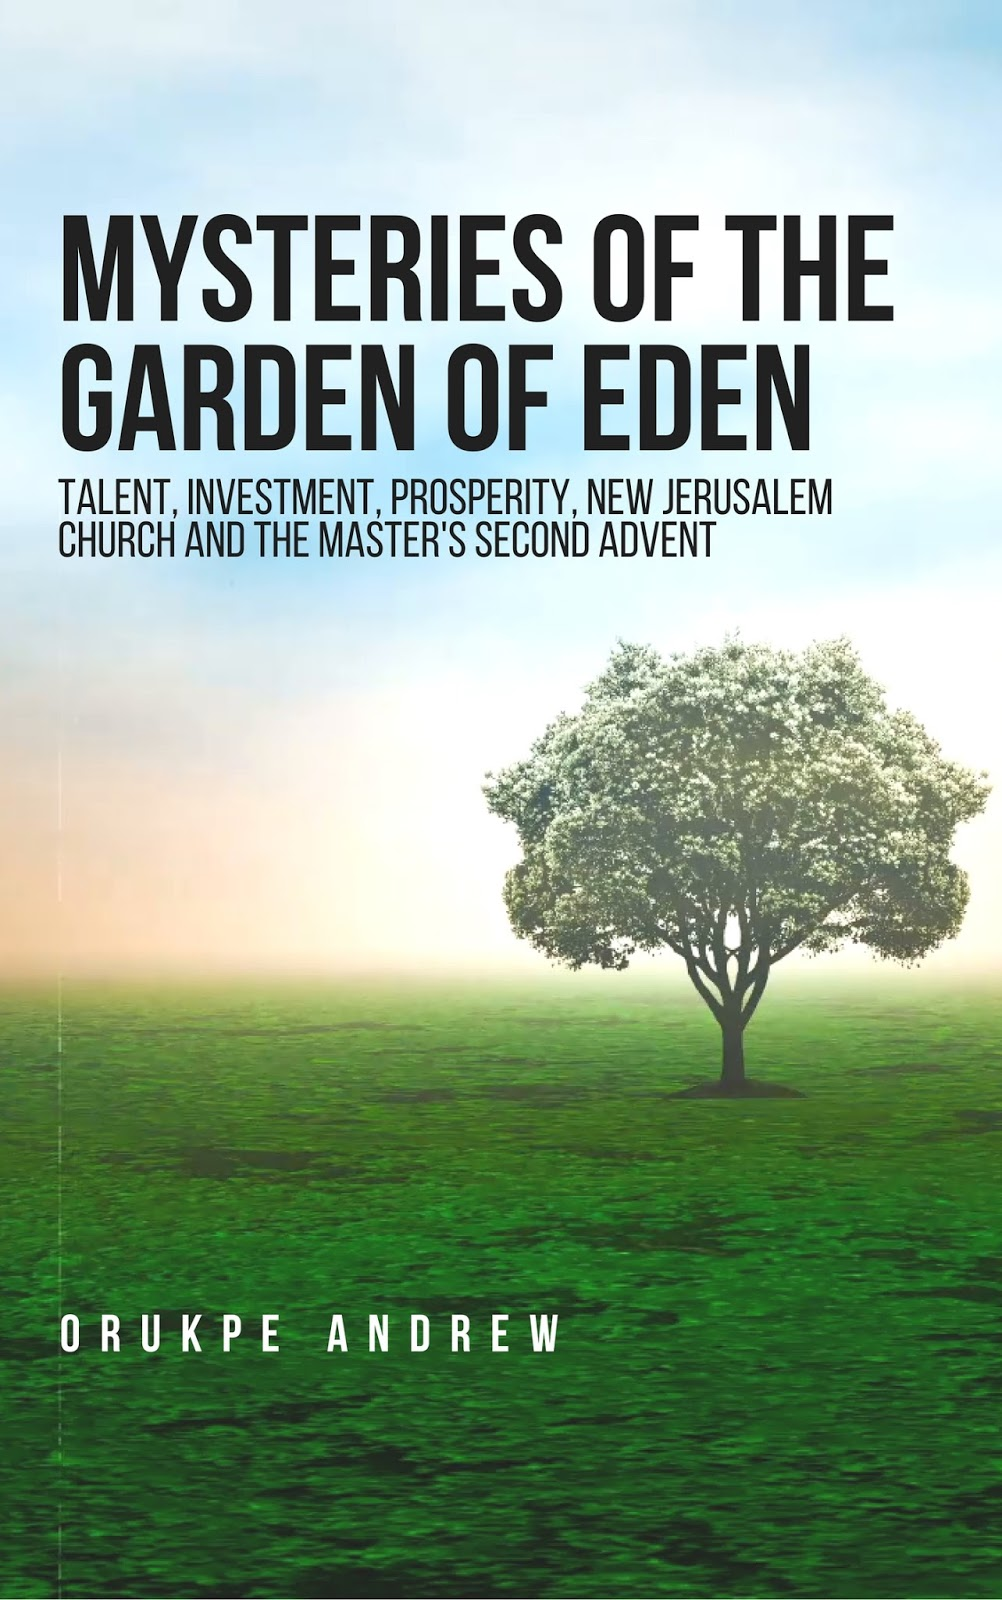 Mysteries of the Garden of Eden: Talent, Investment, Prosperity, New Jerusalem Church and the Master's Second Advent by Orukpe Andrew